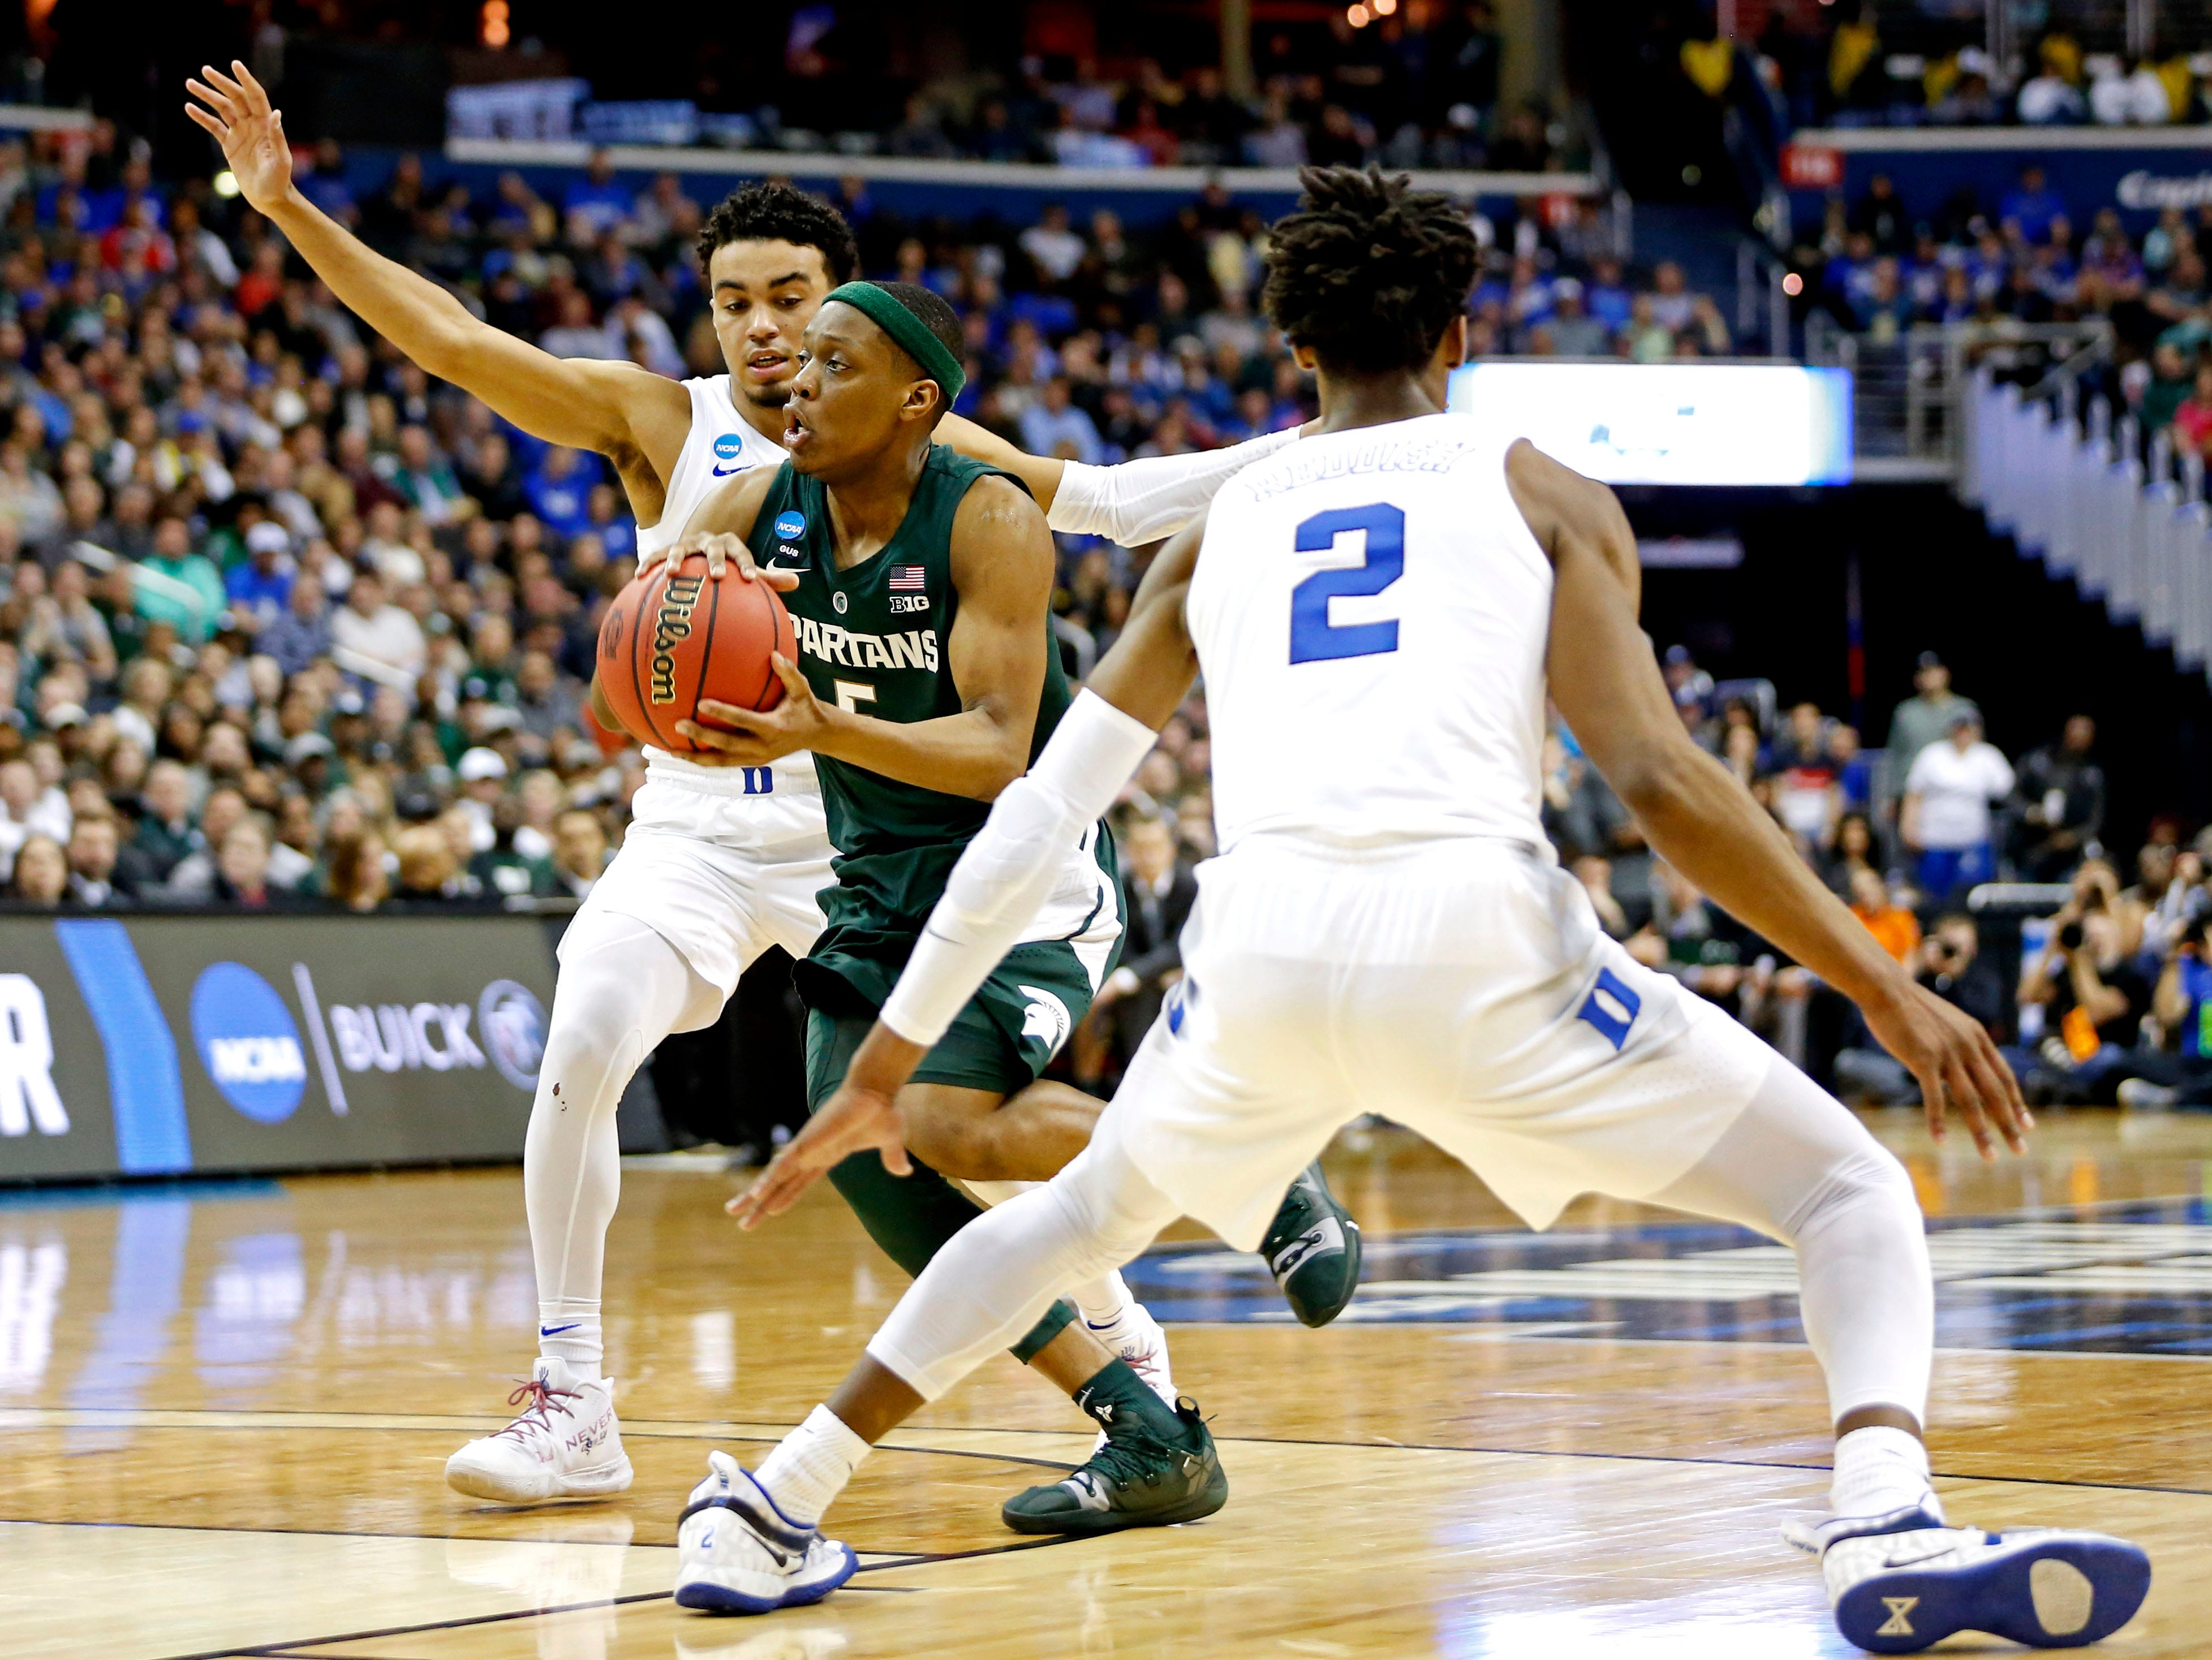 Mar 31, 2019; Washington, DC, USA; Michigan State Spartans guard Cassius Winston (5) drives to the basket against Duke Blue Devils forward Cam Reddish (2) and guard Tre Jones (3) during the first half in the championship game of the east regional of the 2019 NCAA Tournament at Capital One Arena. Mandatory Credit: Amber Searls-USA TODAY Sports